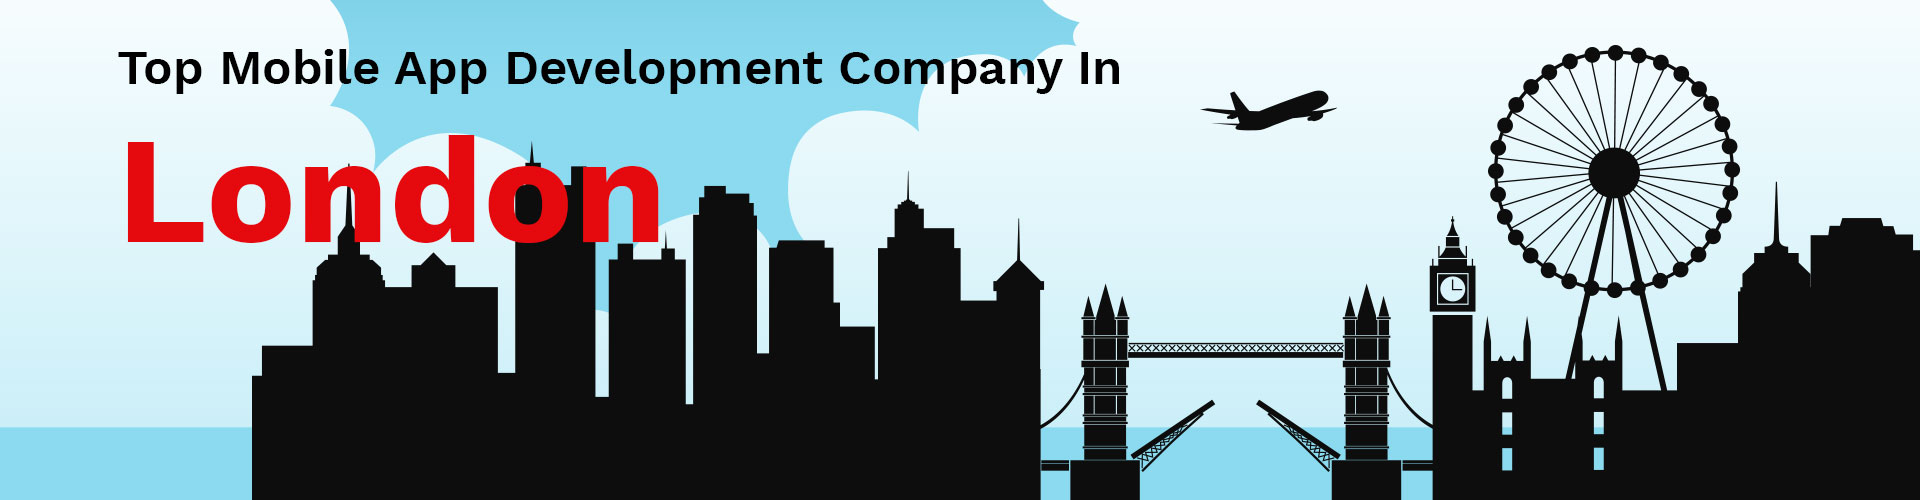 mobile app development company london